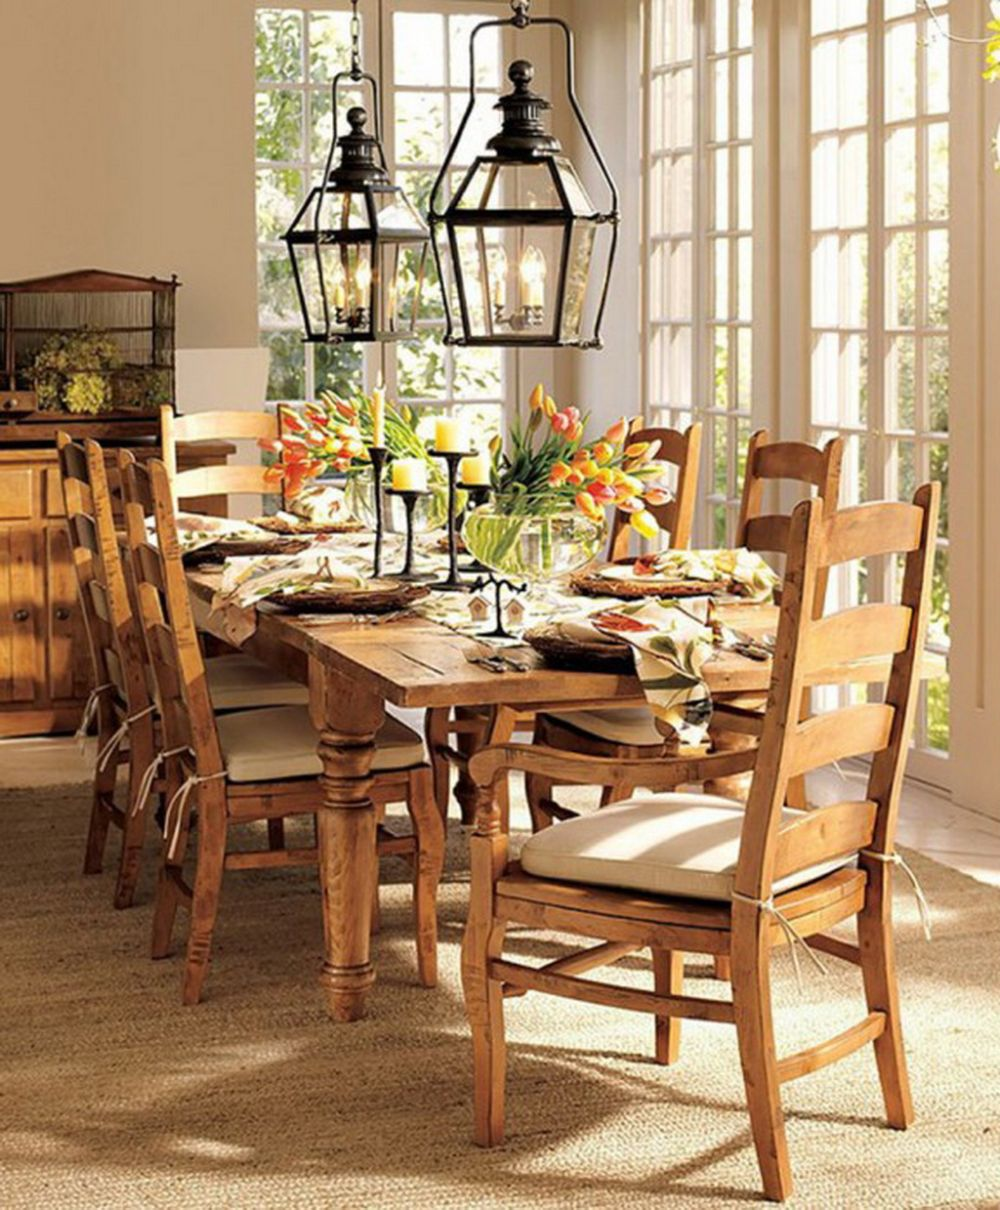 spring dining room decoration with rustic black candlesticks and custom extensive brown wooden table comely spring decorations for the home making you reluctant to leave it